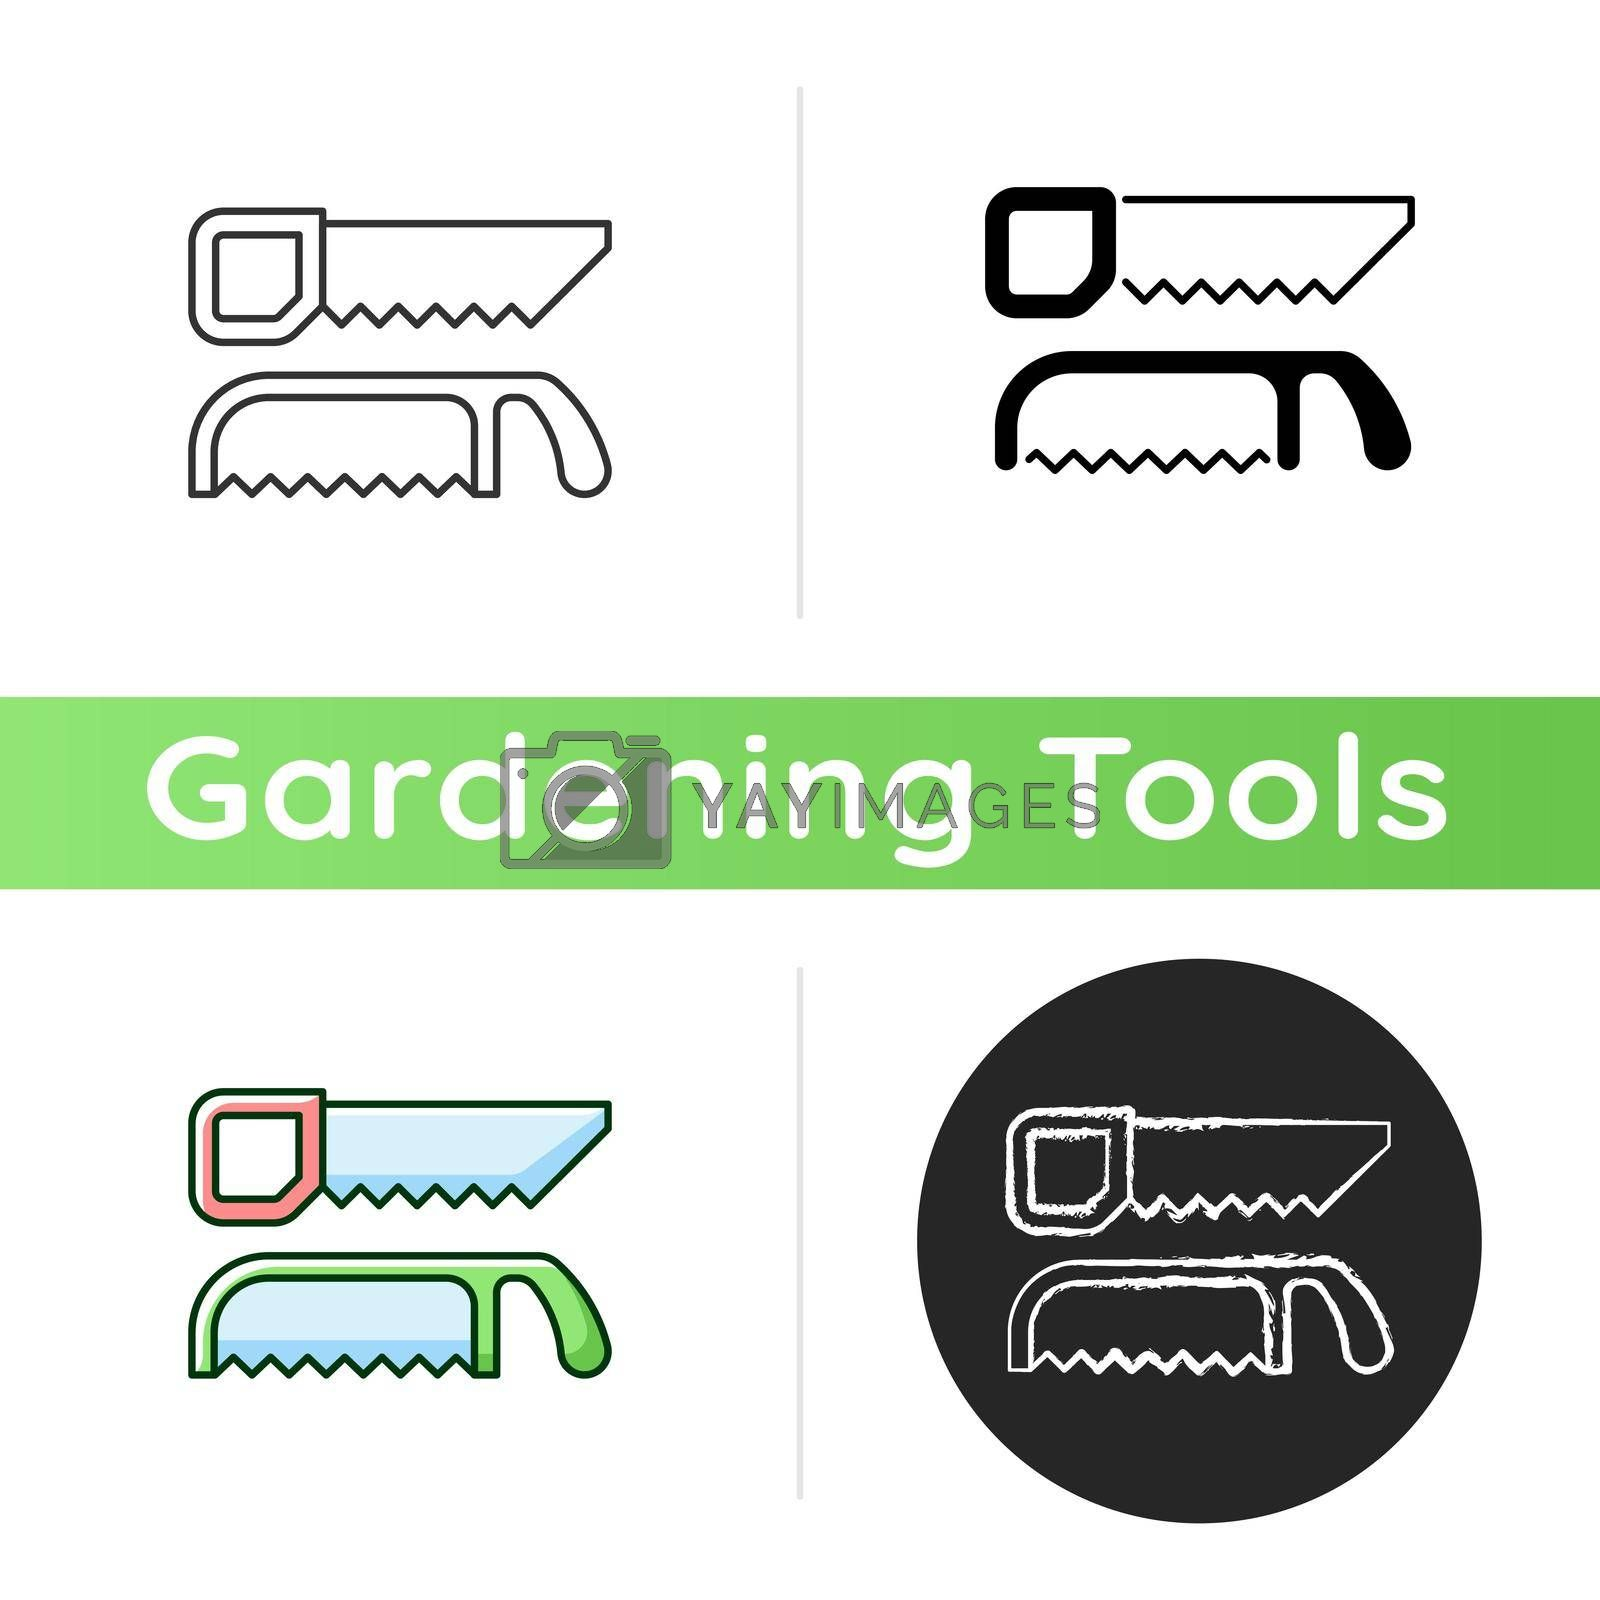 Saws icon. Cutting fresh and dry wood. Handsaw. Blade with sharp teeth. Pruning garden plants. Trimming live shrubs and trees. Linear black and RGB color styles. Isolated vector illustrations